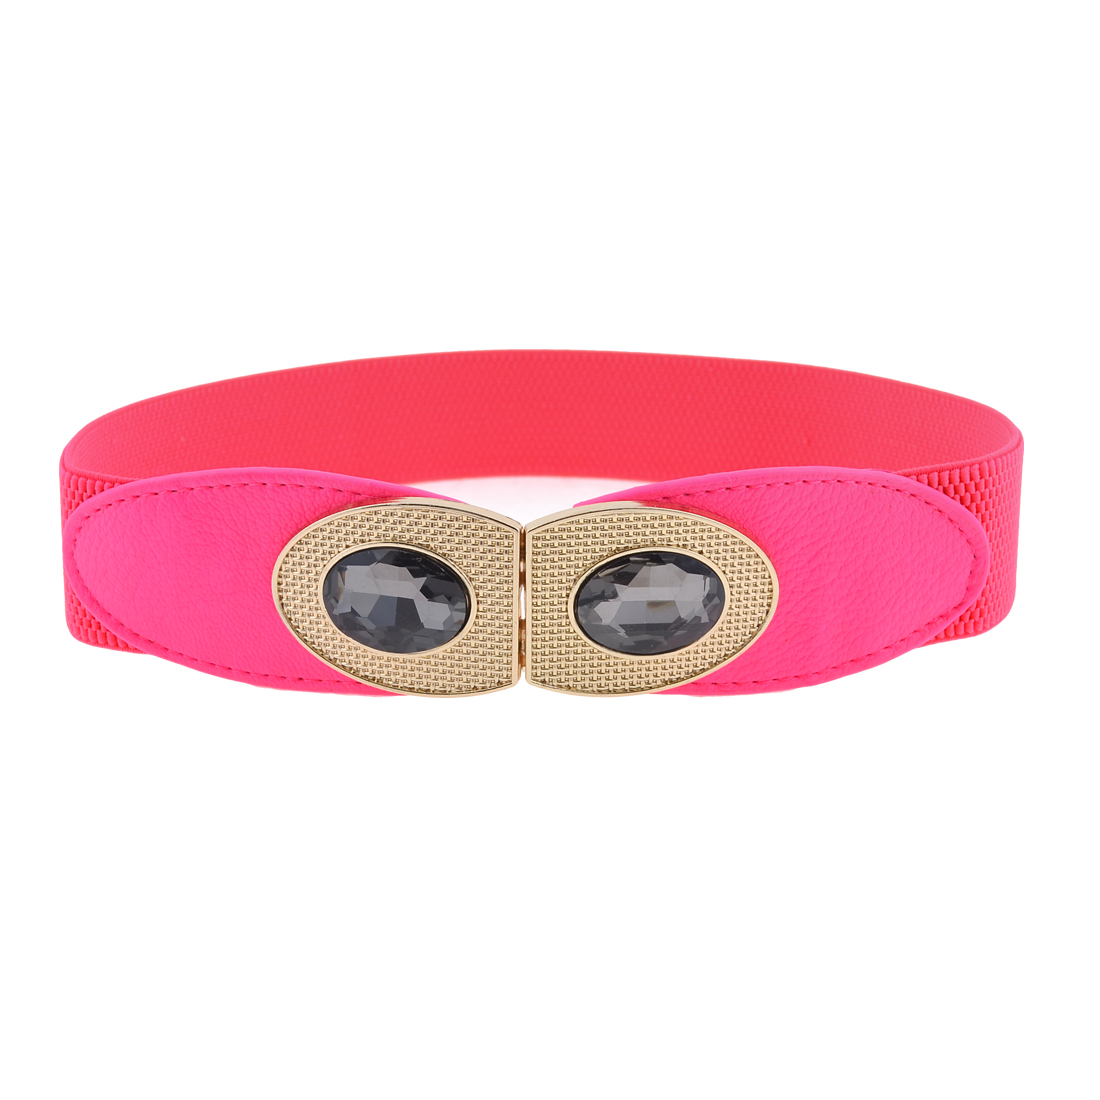 Lady Plastic Cystal Decor Eye Shape Interlocking Buckle Stretchy Cinch Belt Fuchsia